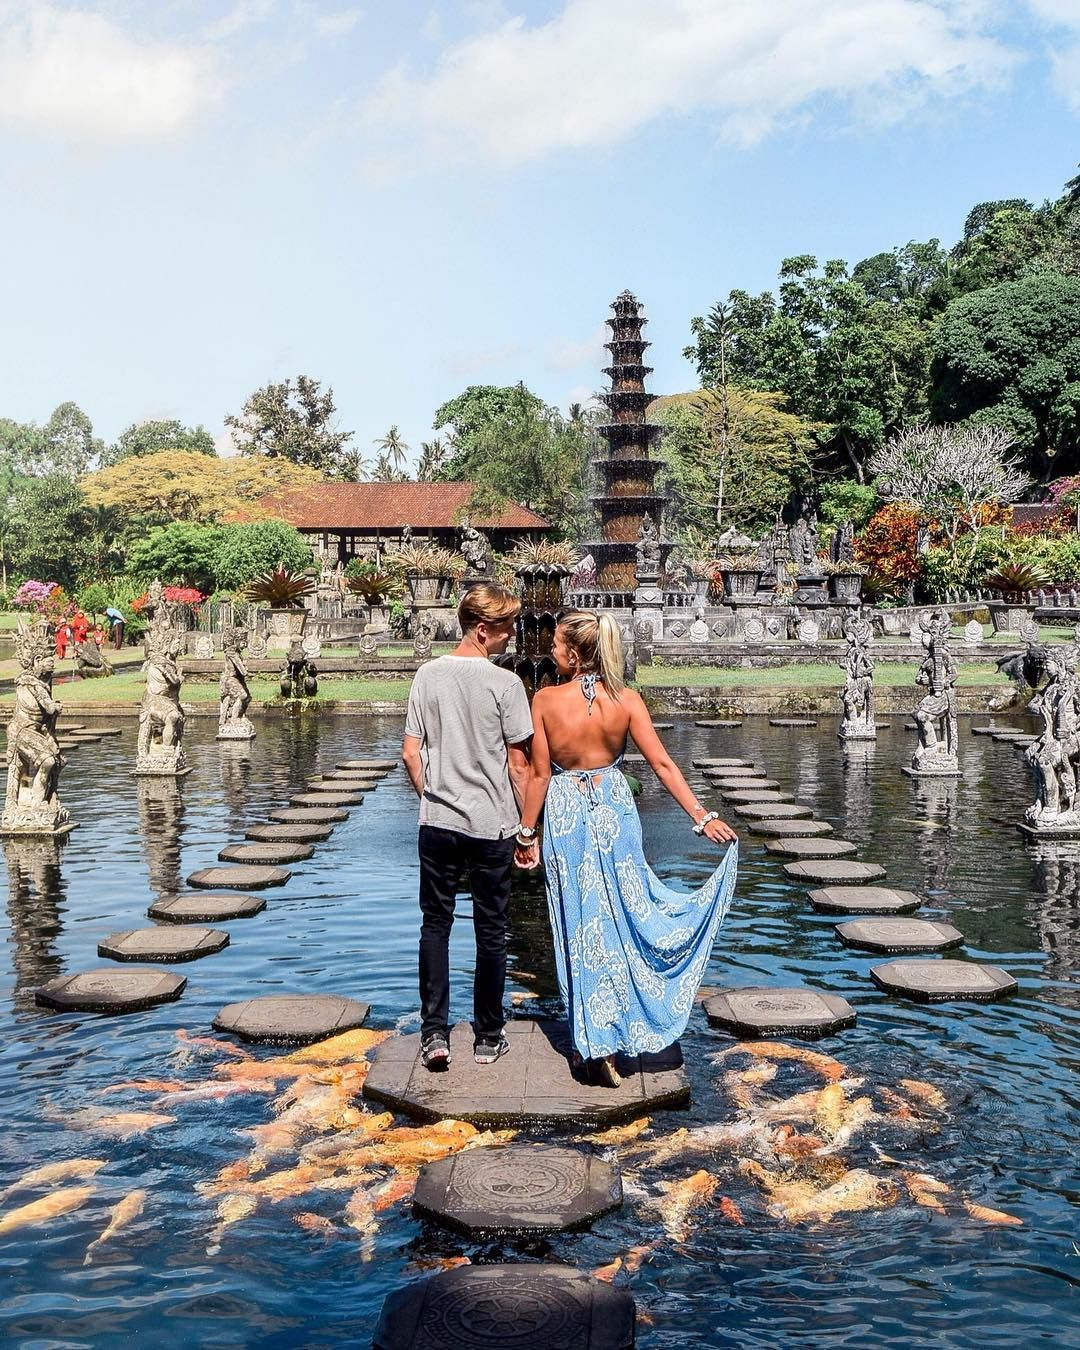 Tirta Gangga Royal Water Garden: Best Bali Instagram Spots - The Ultimate Guide